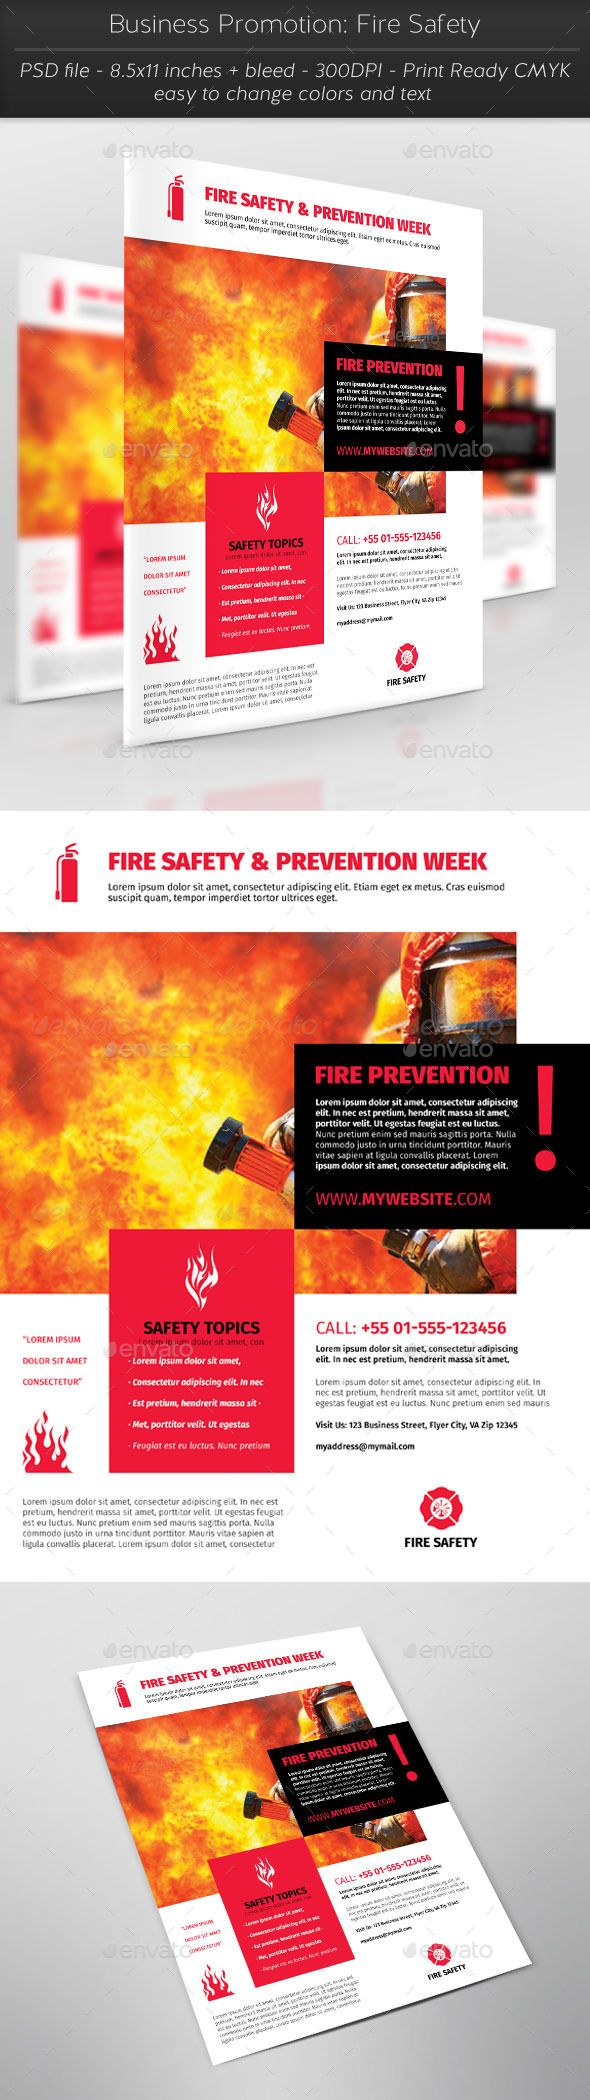 Business Promotion Fire Safety (With images) Business